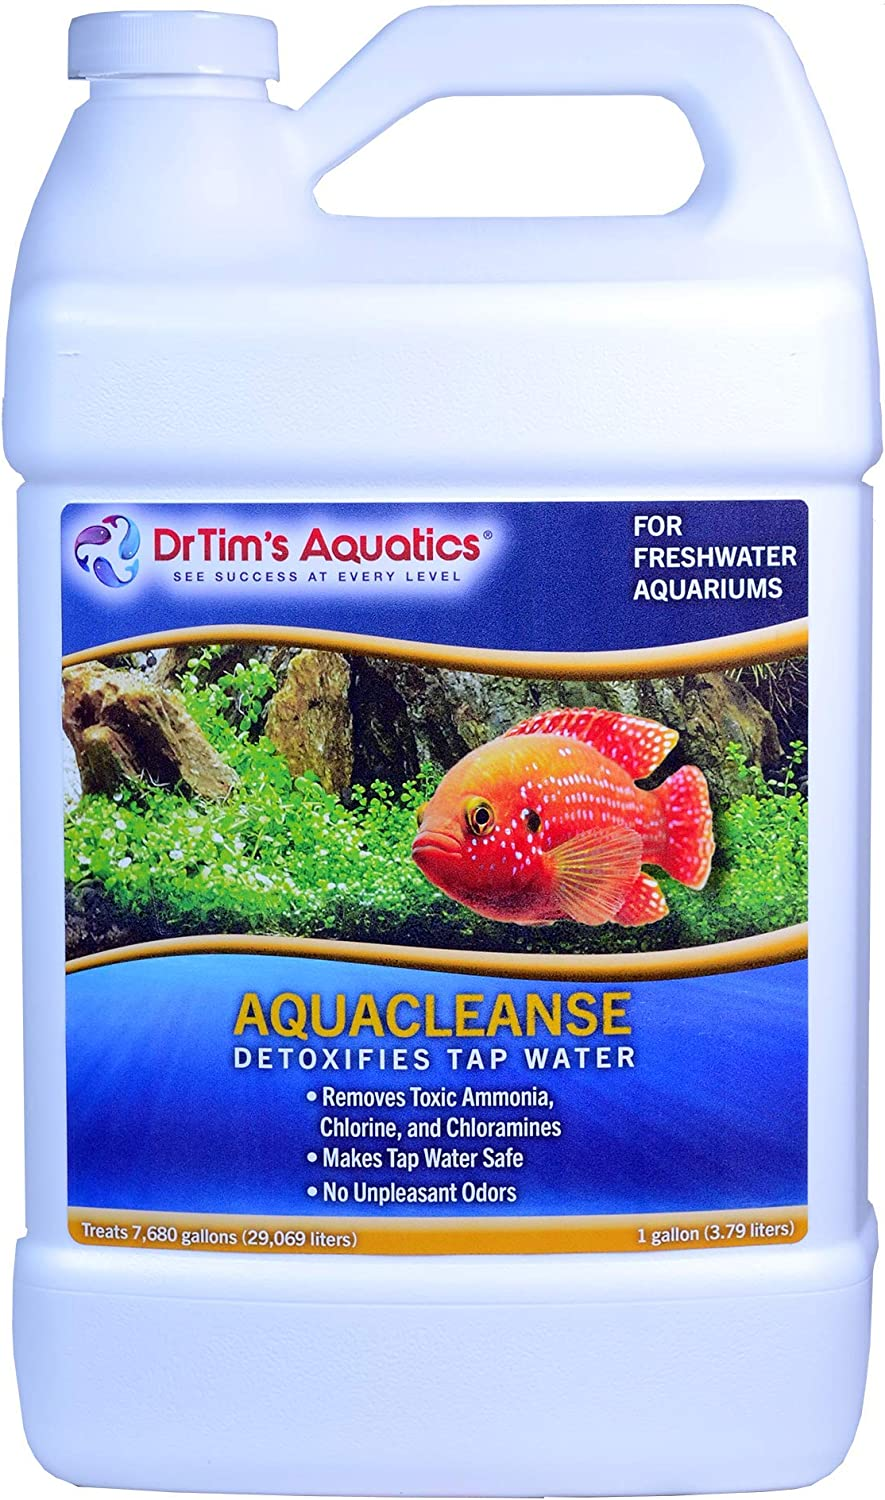 Dr. Tim's Aquatics Bene-FISH-al Seaweed Grinder Fish Food Enhancement Refill – Enhances Fish Color, Development – Adds Extra Flavor, All Natural – For Freshwater, Marine Fish, Coral Aquaria – 1.04 Oz.